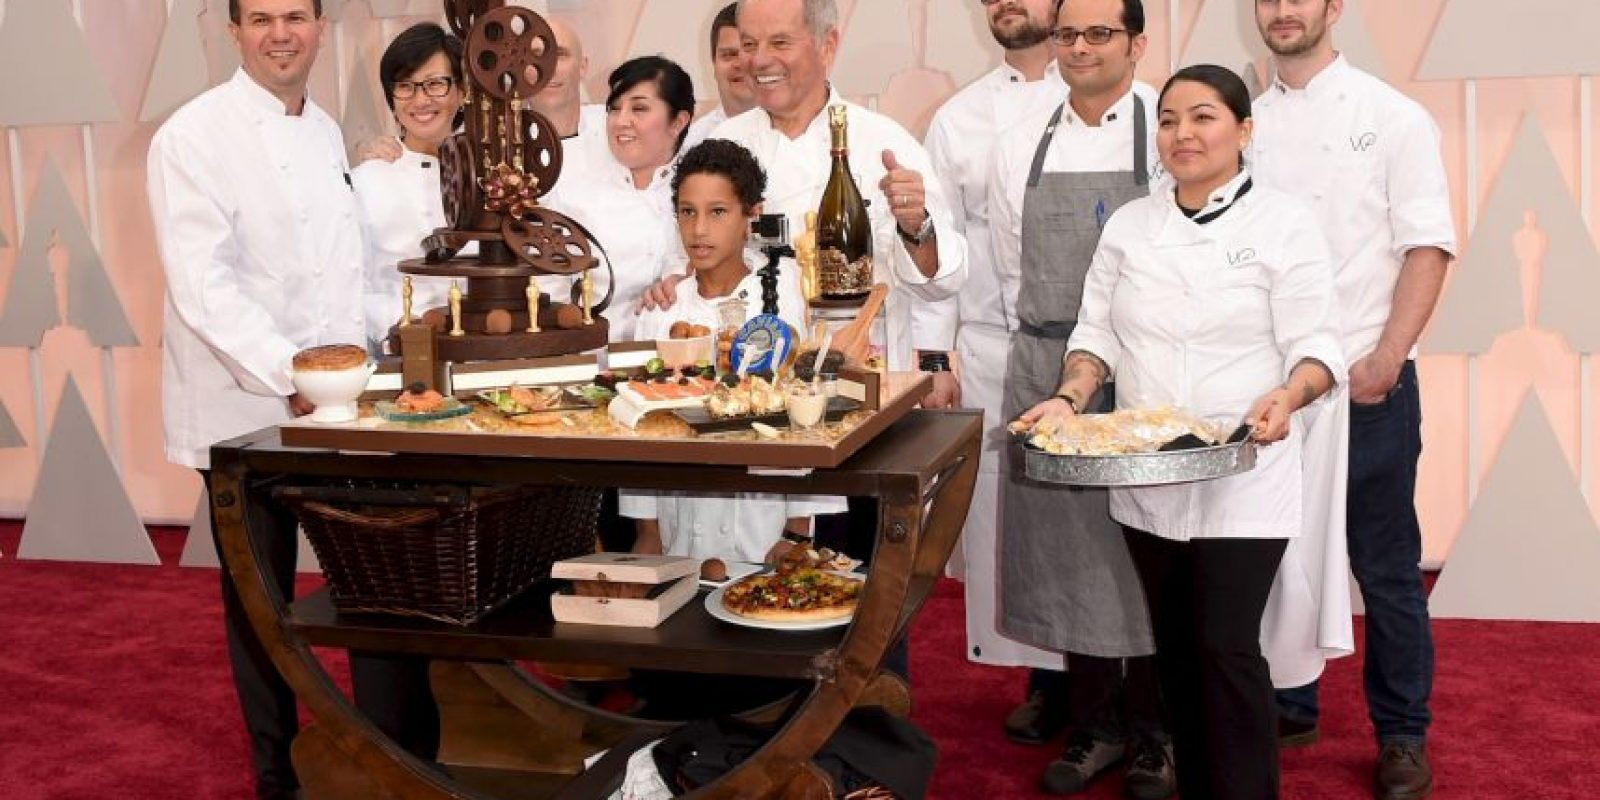 Chef Wolfgang Puck Foto: Getty Images